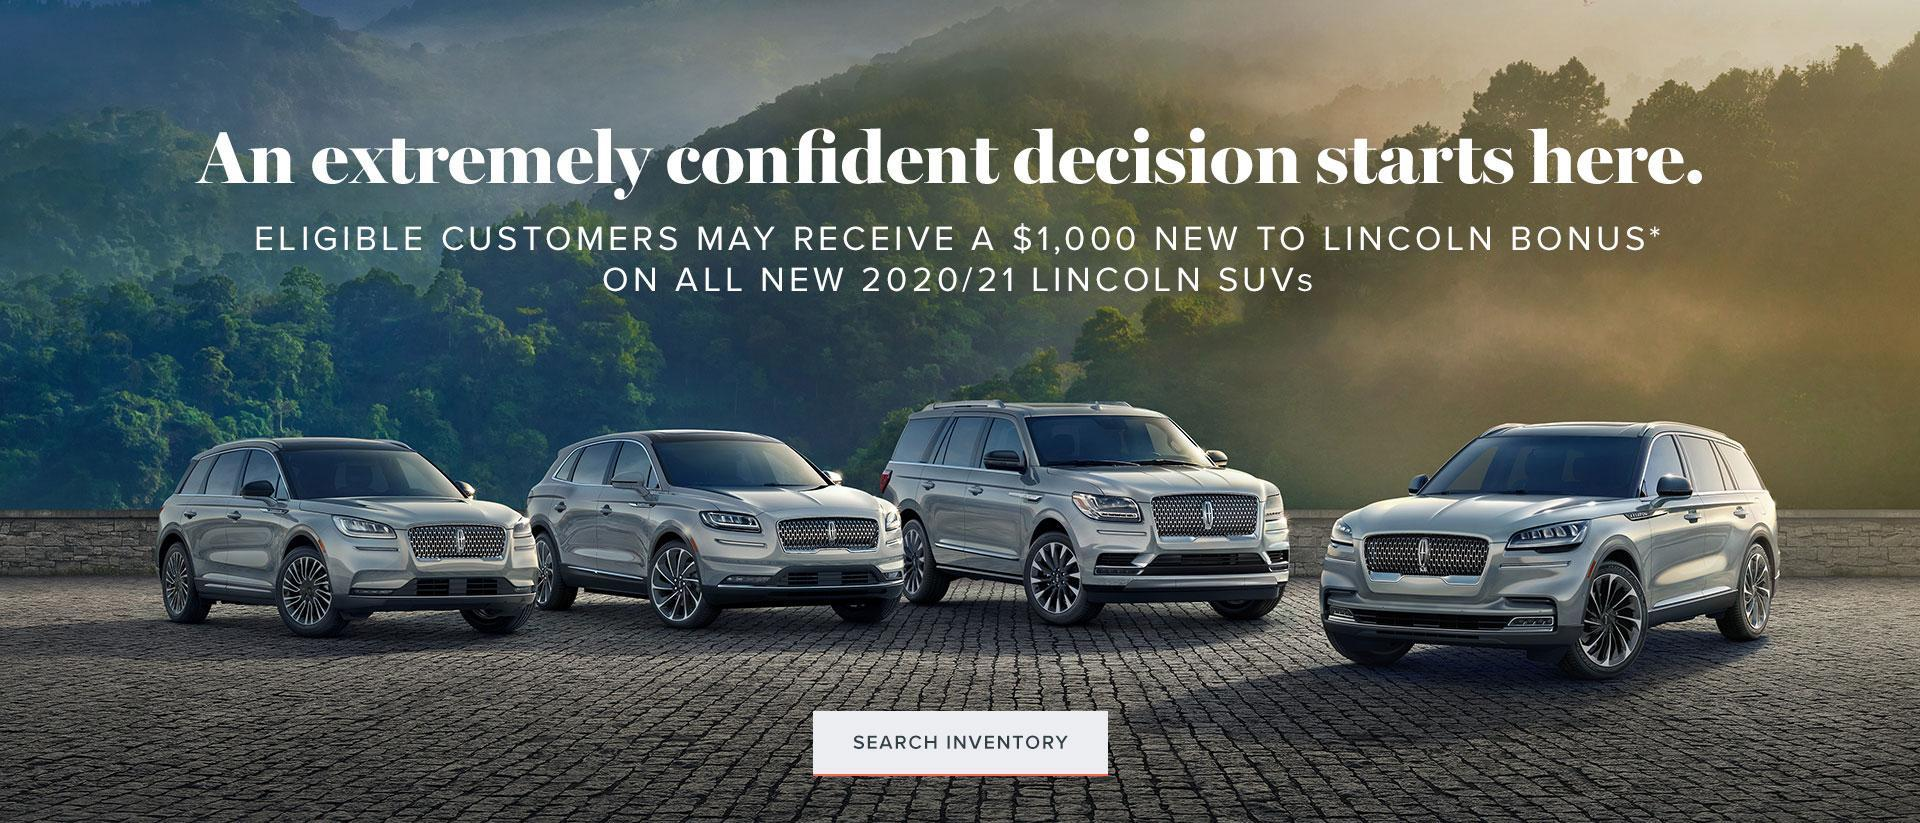 An extremely confident decision starts with Lincoln of Canada.